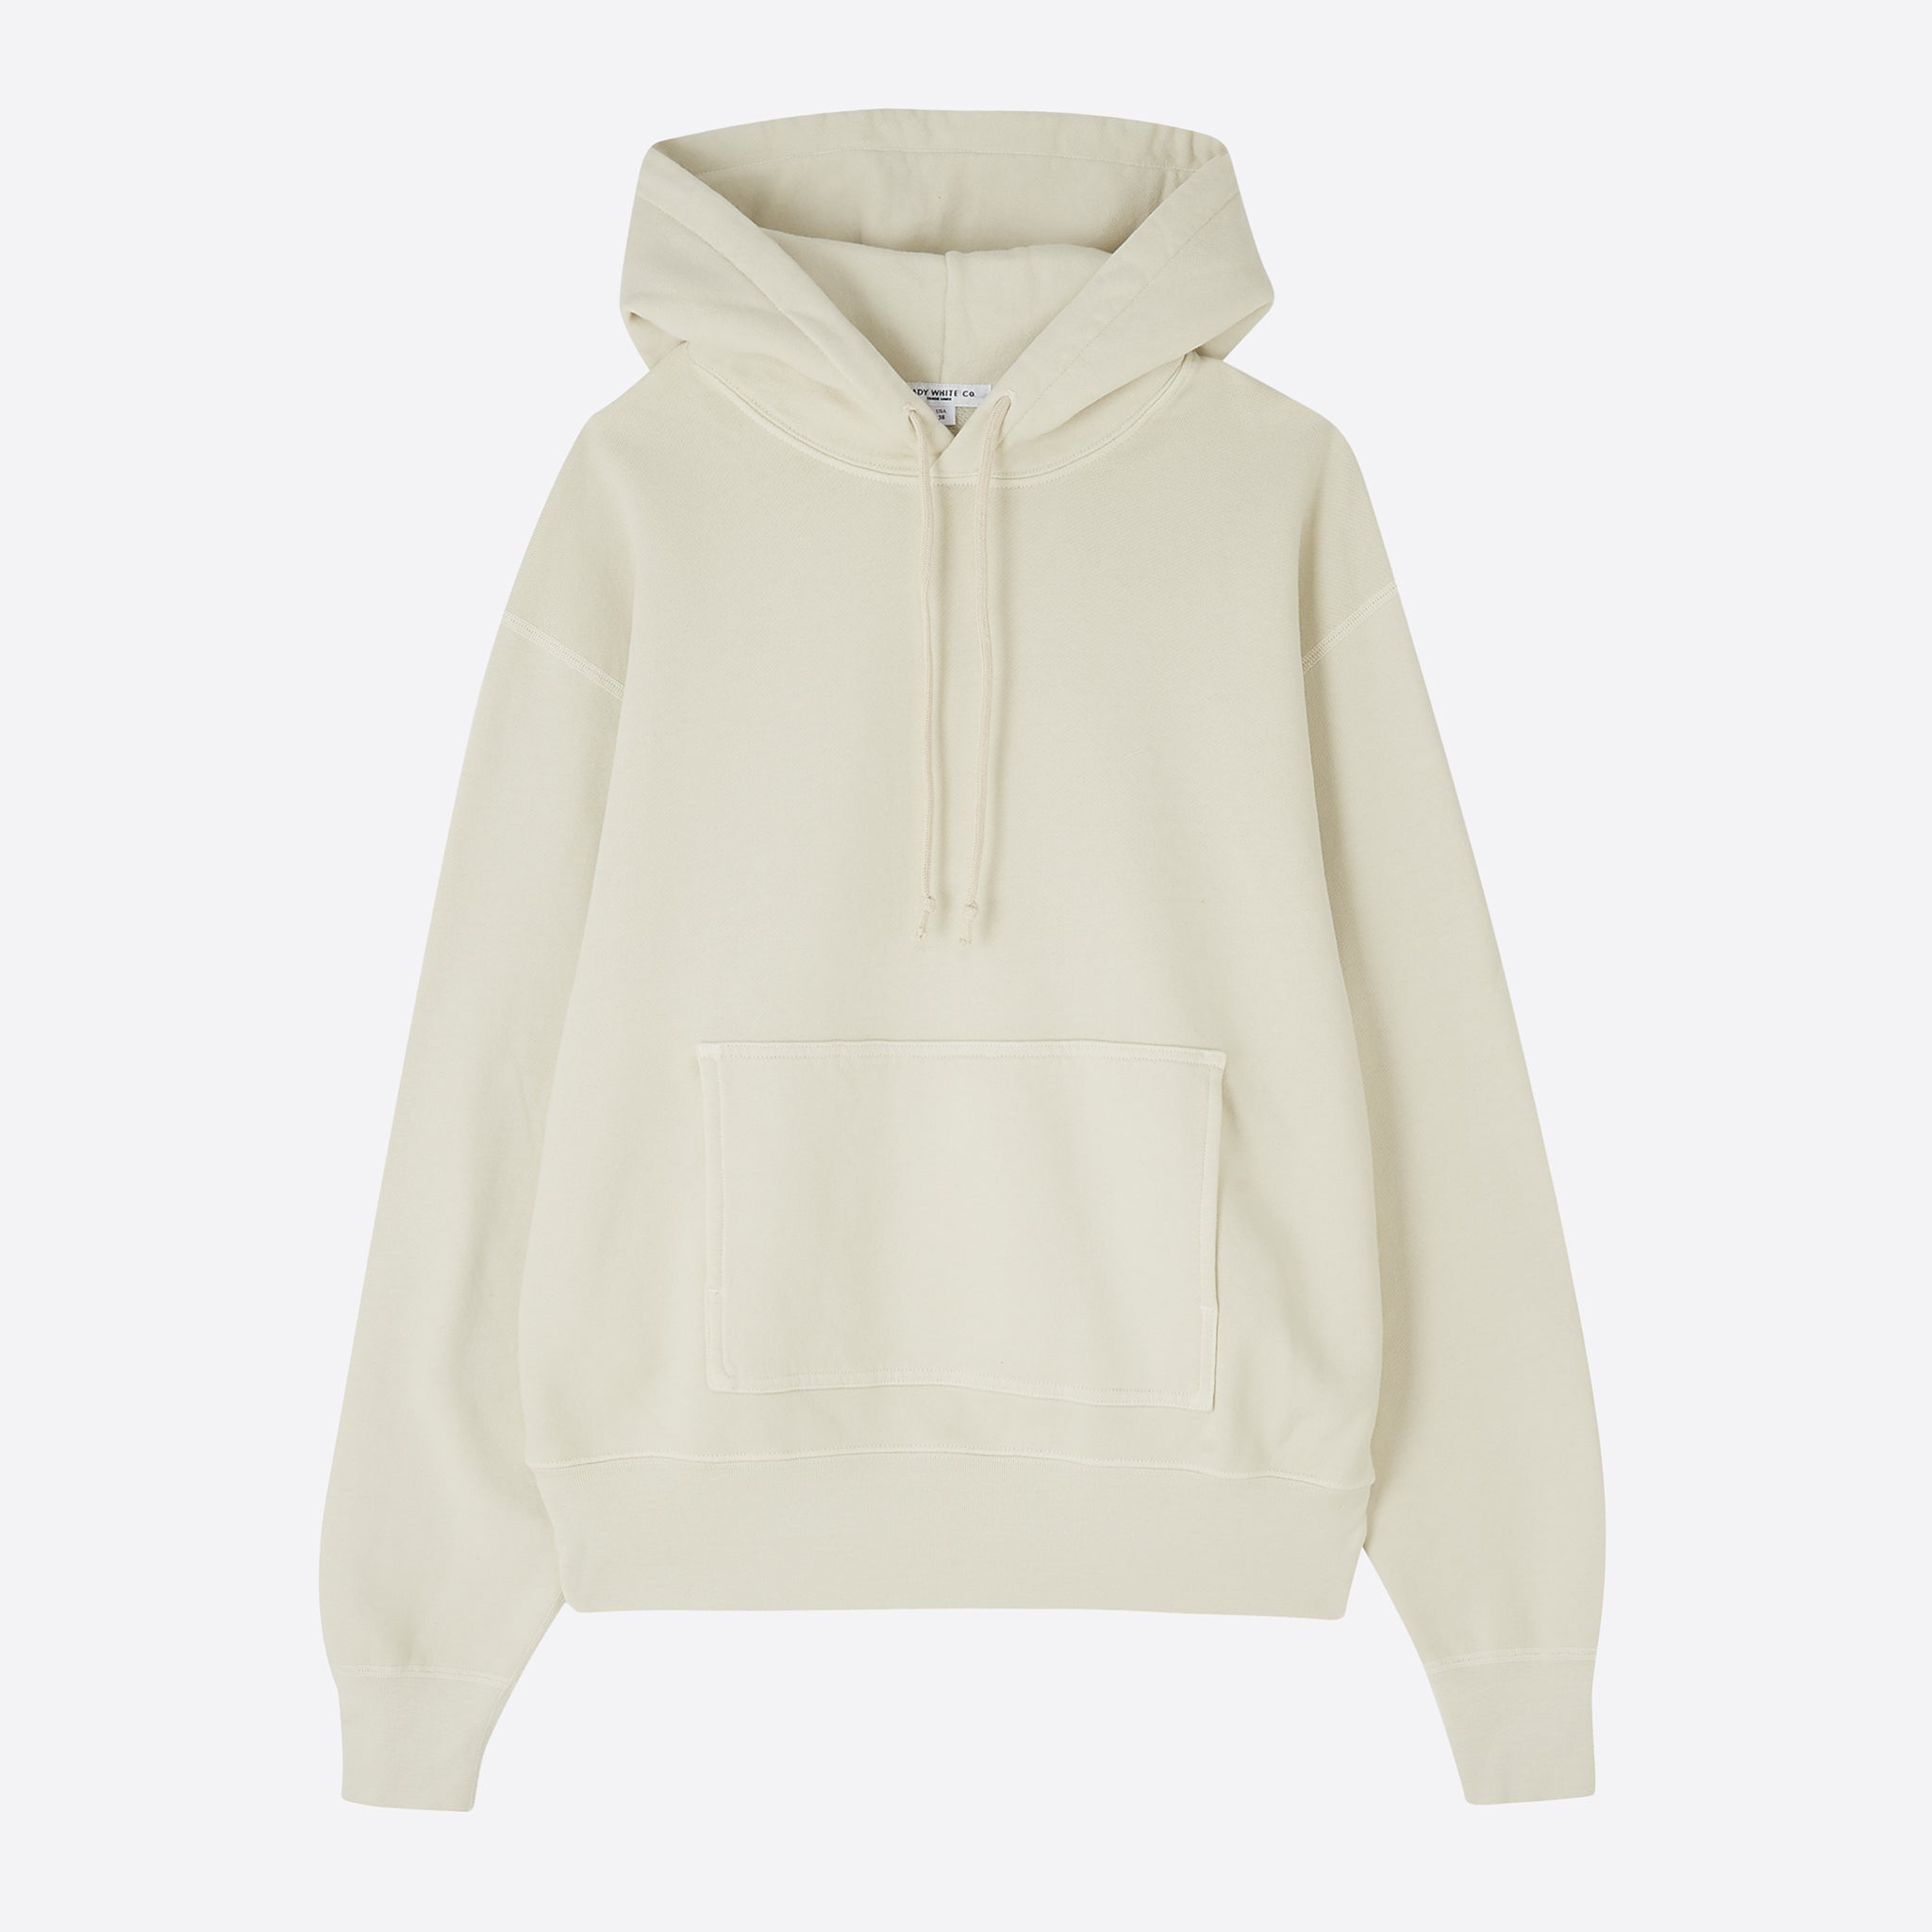 Lady White Co. Hoodie in Bone